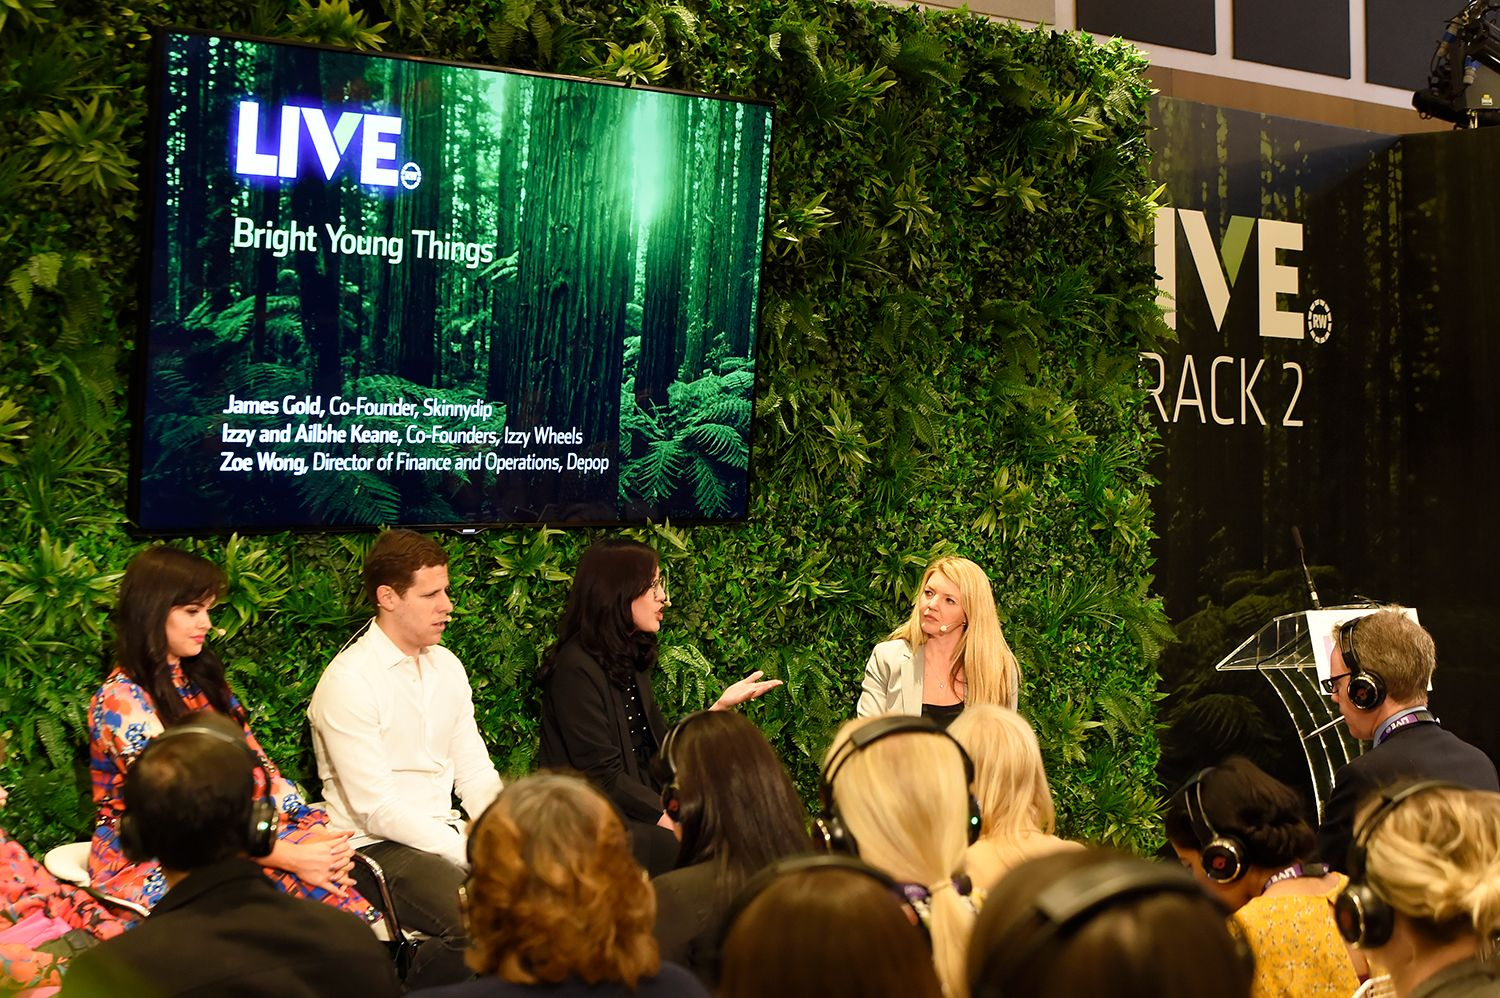 What is Retail Week Live